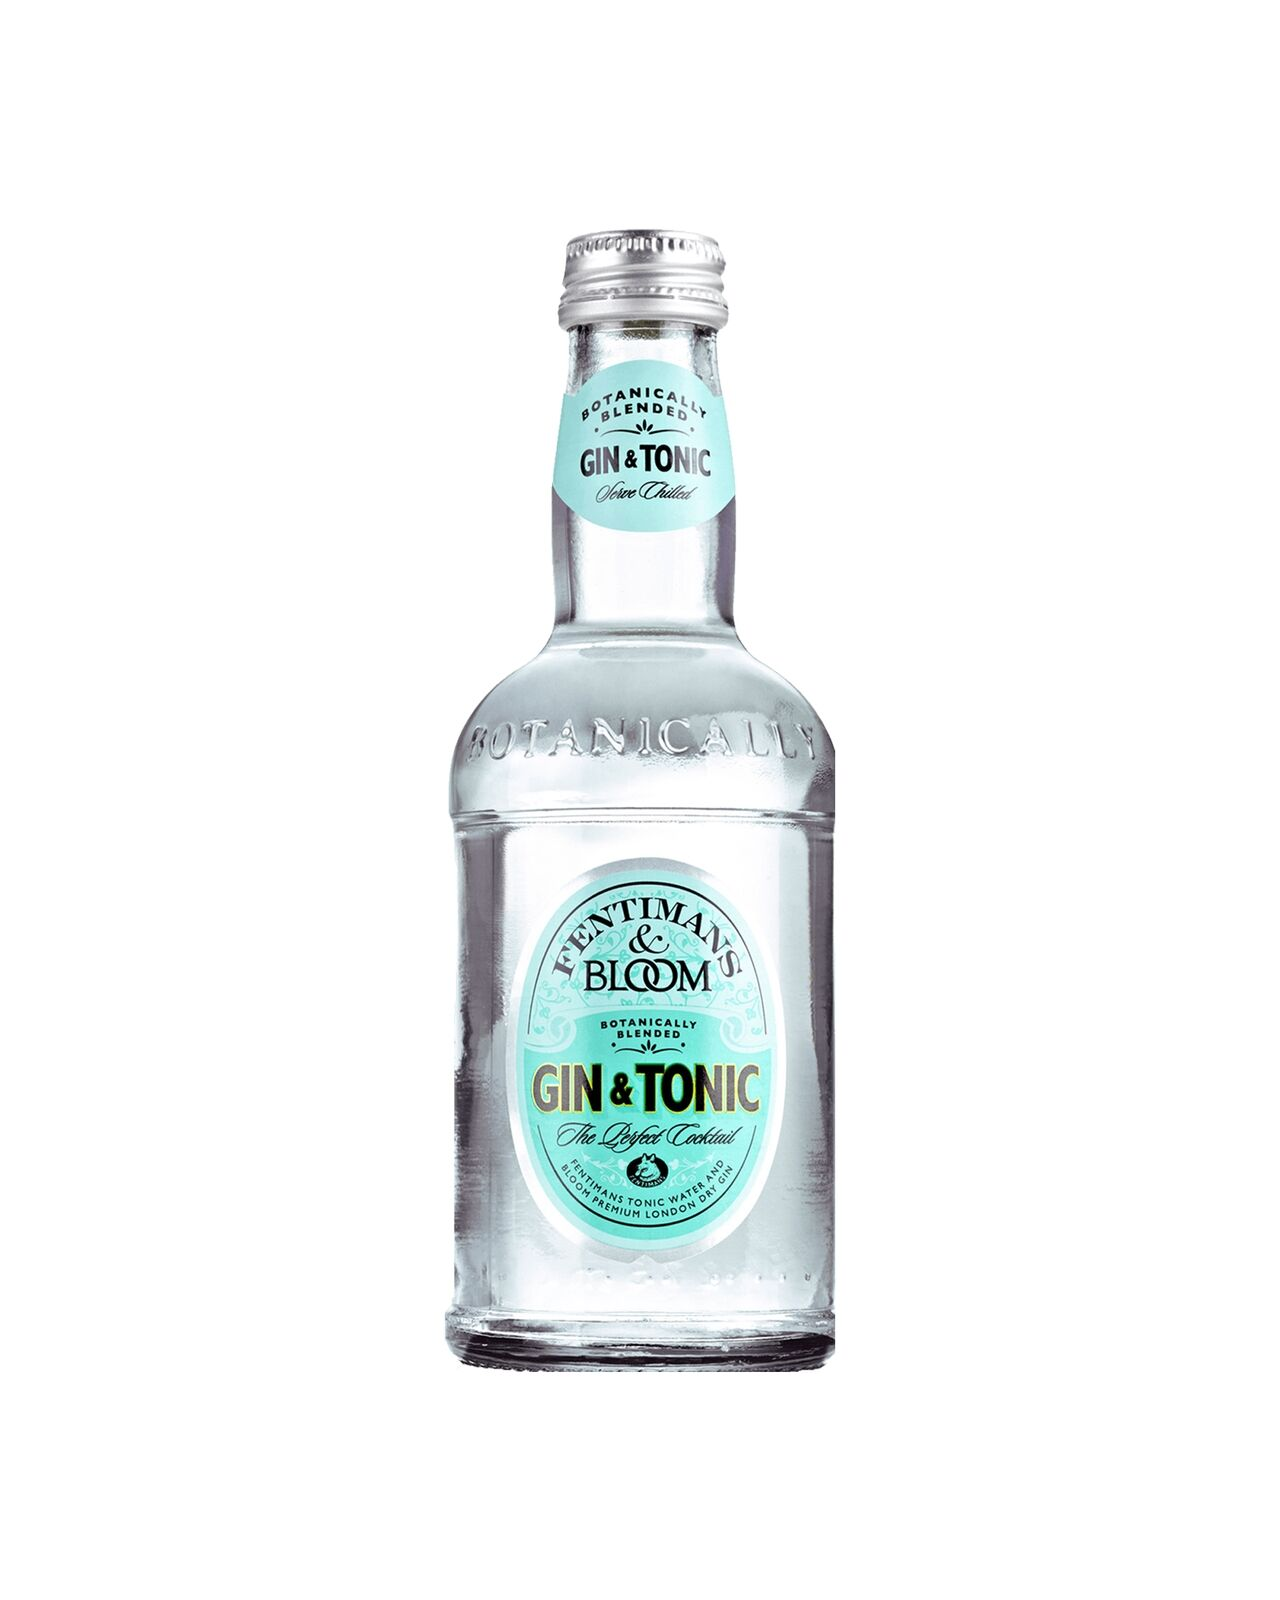 Fentiman's Bloom Gin & Tonic 275mL case of 24 Premix